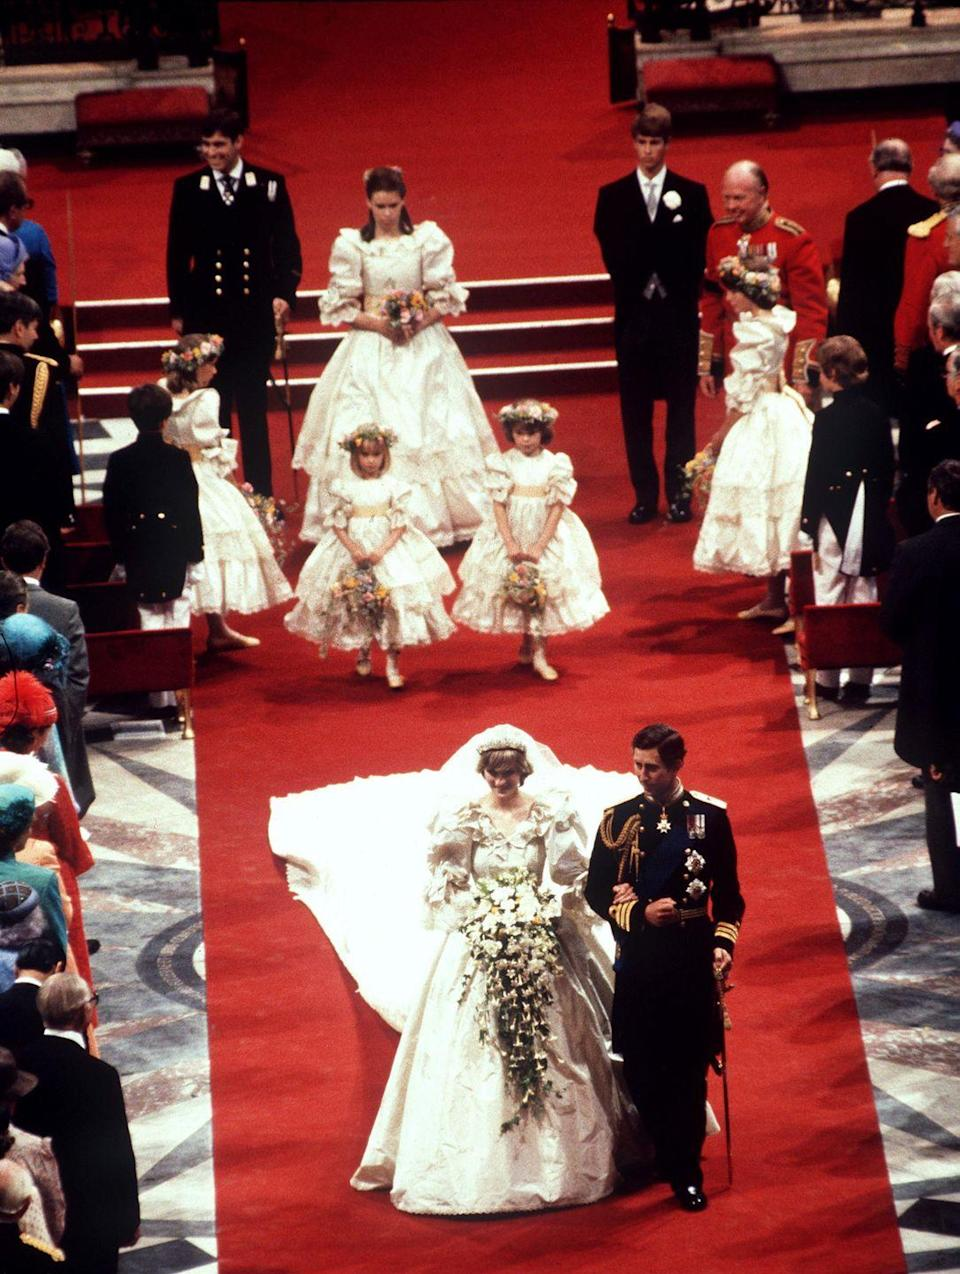 """<p>It wasn't just Princess Diana's wedding dress that impacted <a href=""""https://www.elle.com/fashion/personal-style/g31437529/bridal-style-evolution/"""" rel=""""nofollow noopener"""" target=""""_blank"""" data-ylk=""""slk:bridal fashion"""" class=""""link rapid-noclick-resp"""">bridal fashion</a>. Her choice of bridesmaid dresses sent brides around the globe into a flurry over puffy sleeves and taffeta for the remainder of the decade. </p>"""